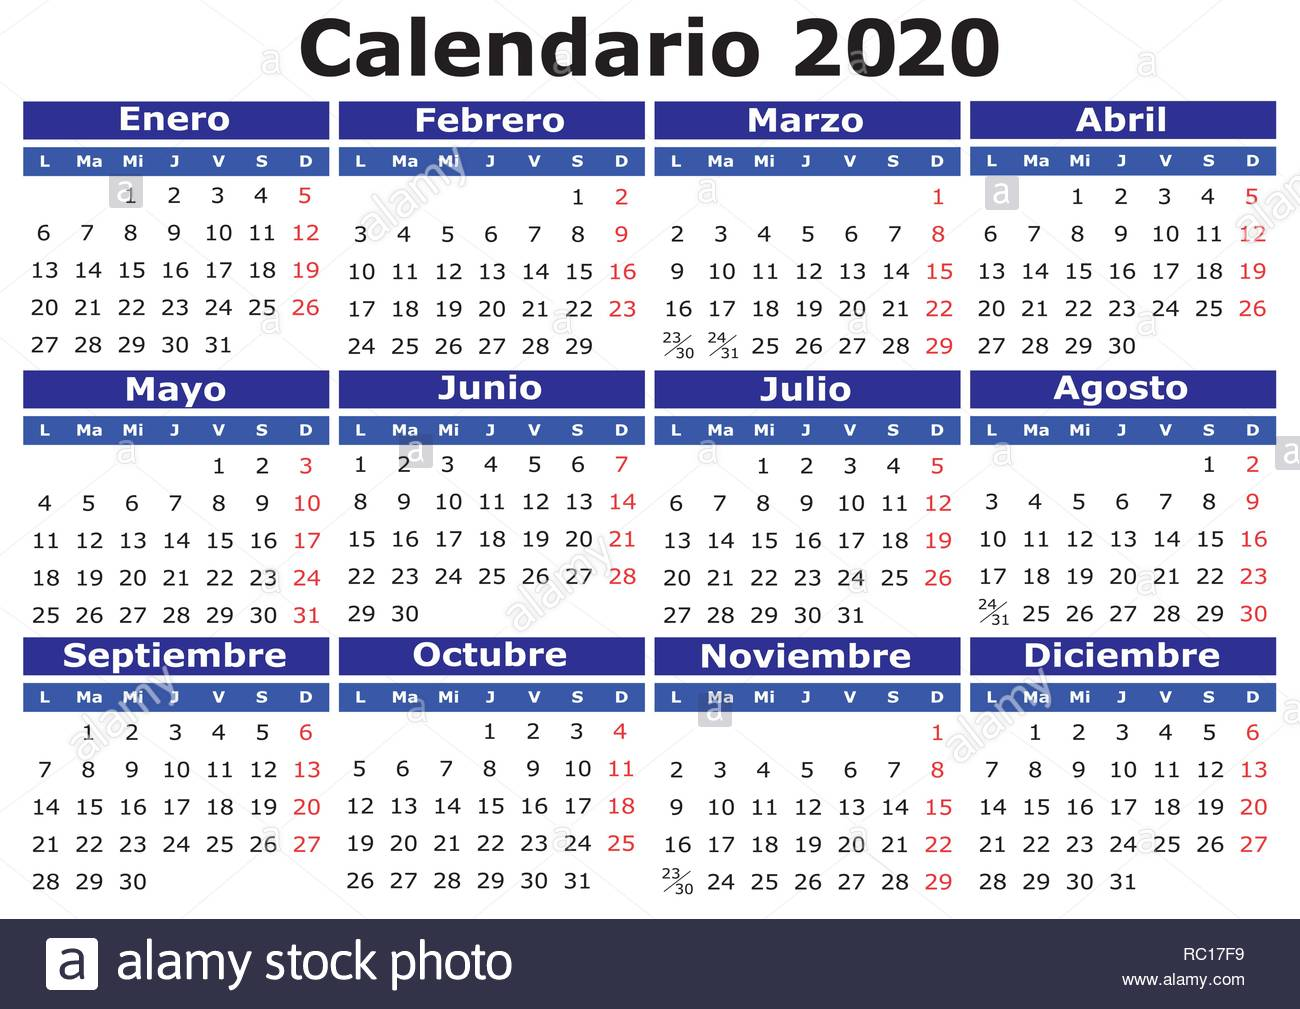 Calendario Trasporti 2020.Calendario 2020 Immagini Calendario 2020 Fotos Stock Alamy